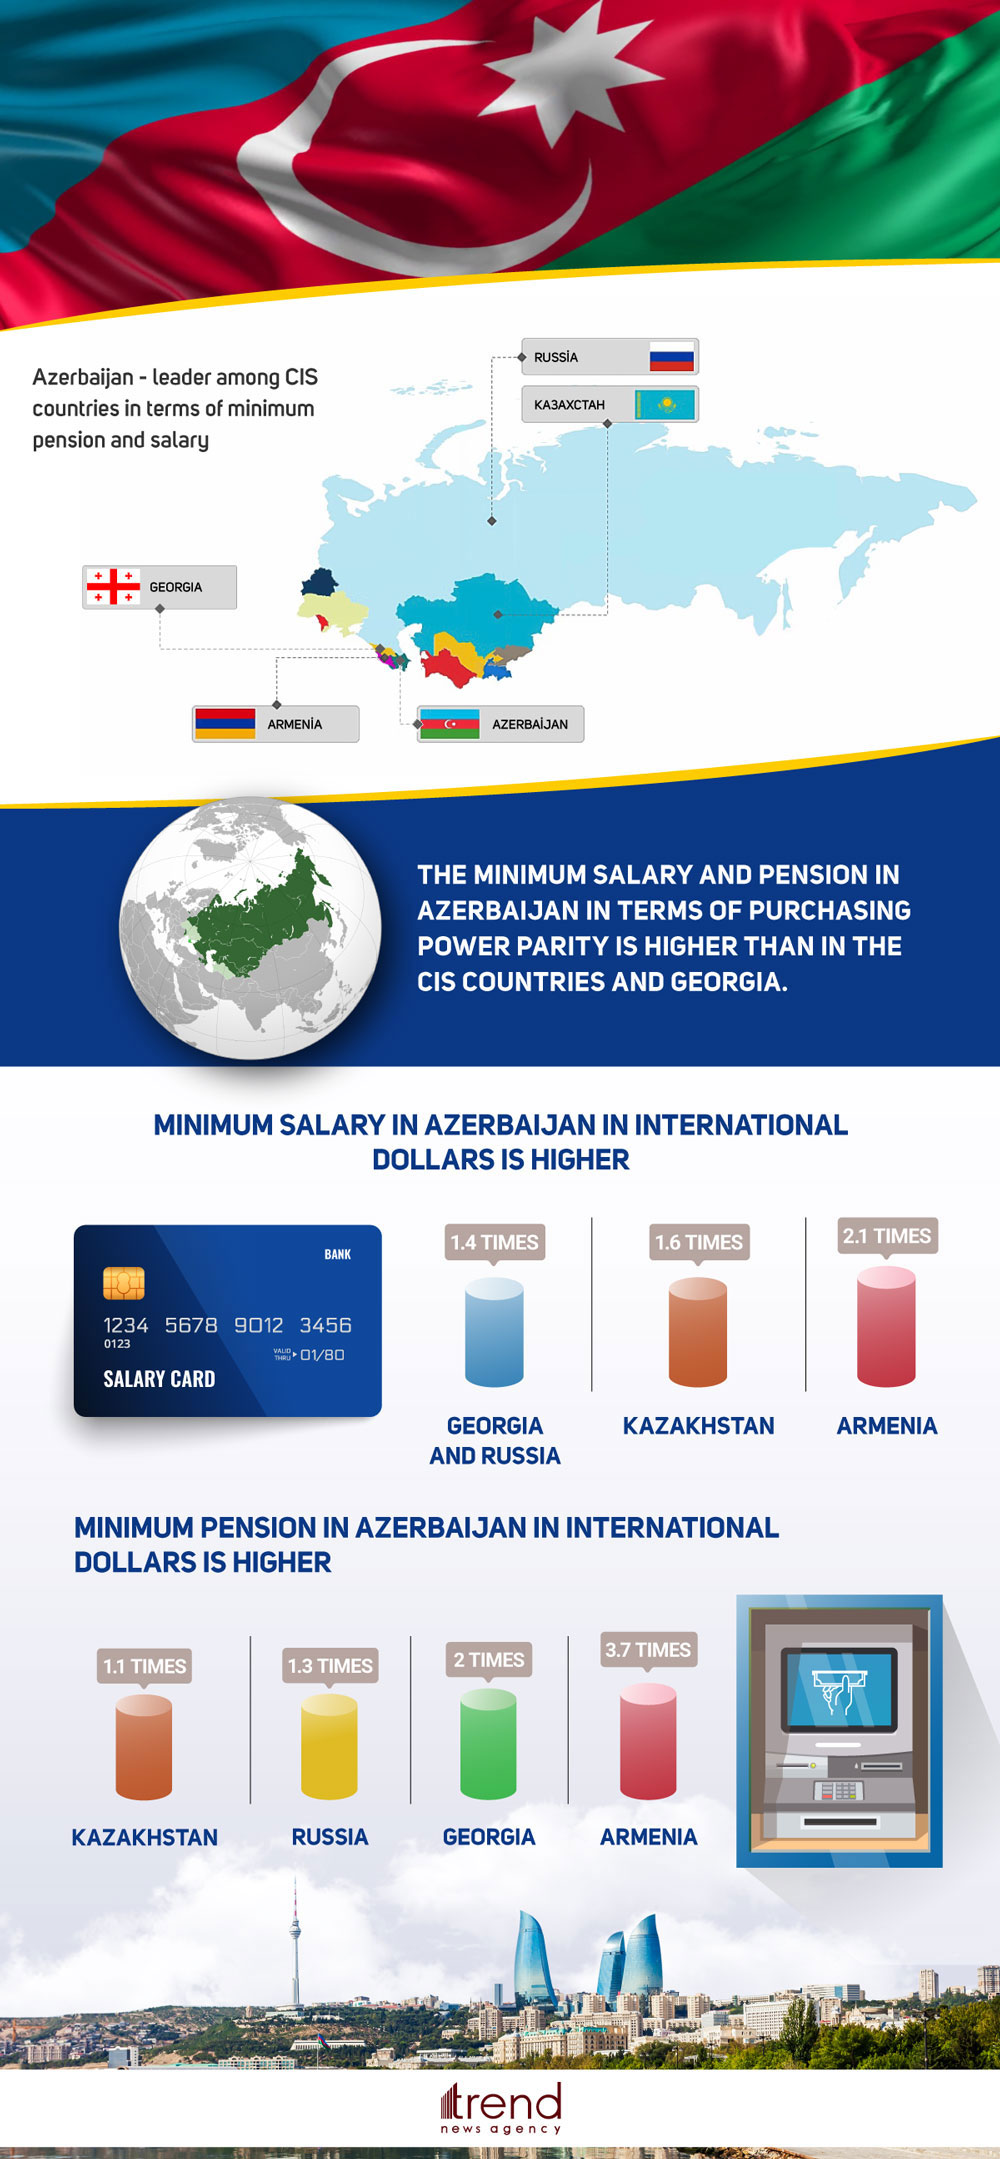 Azerbaijan is leader among CIS countries in terms of minimum pension and salary